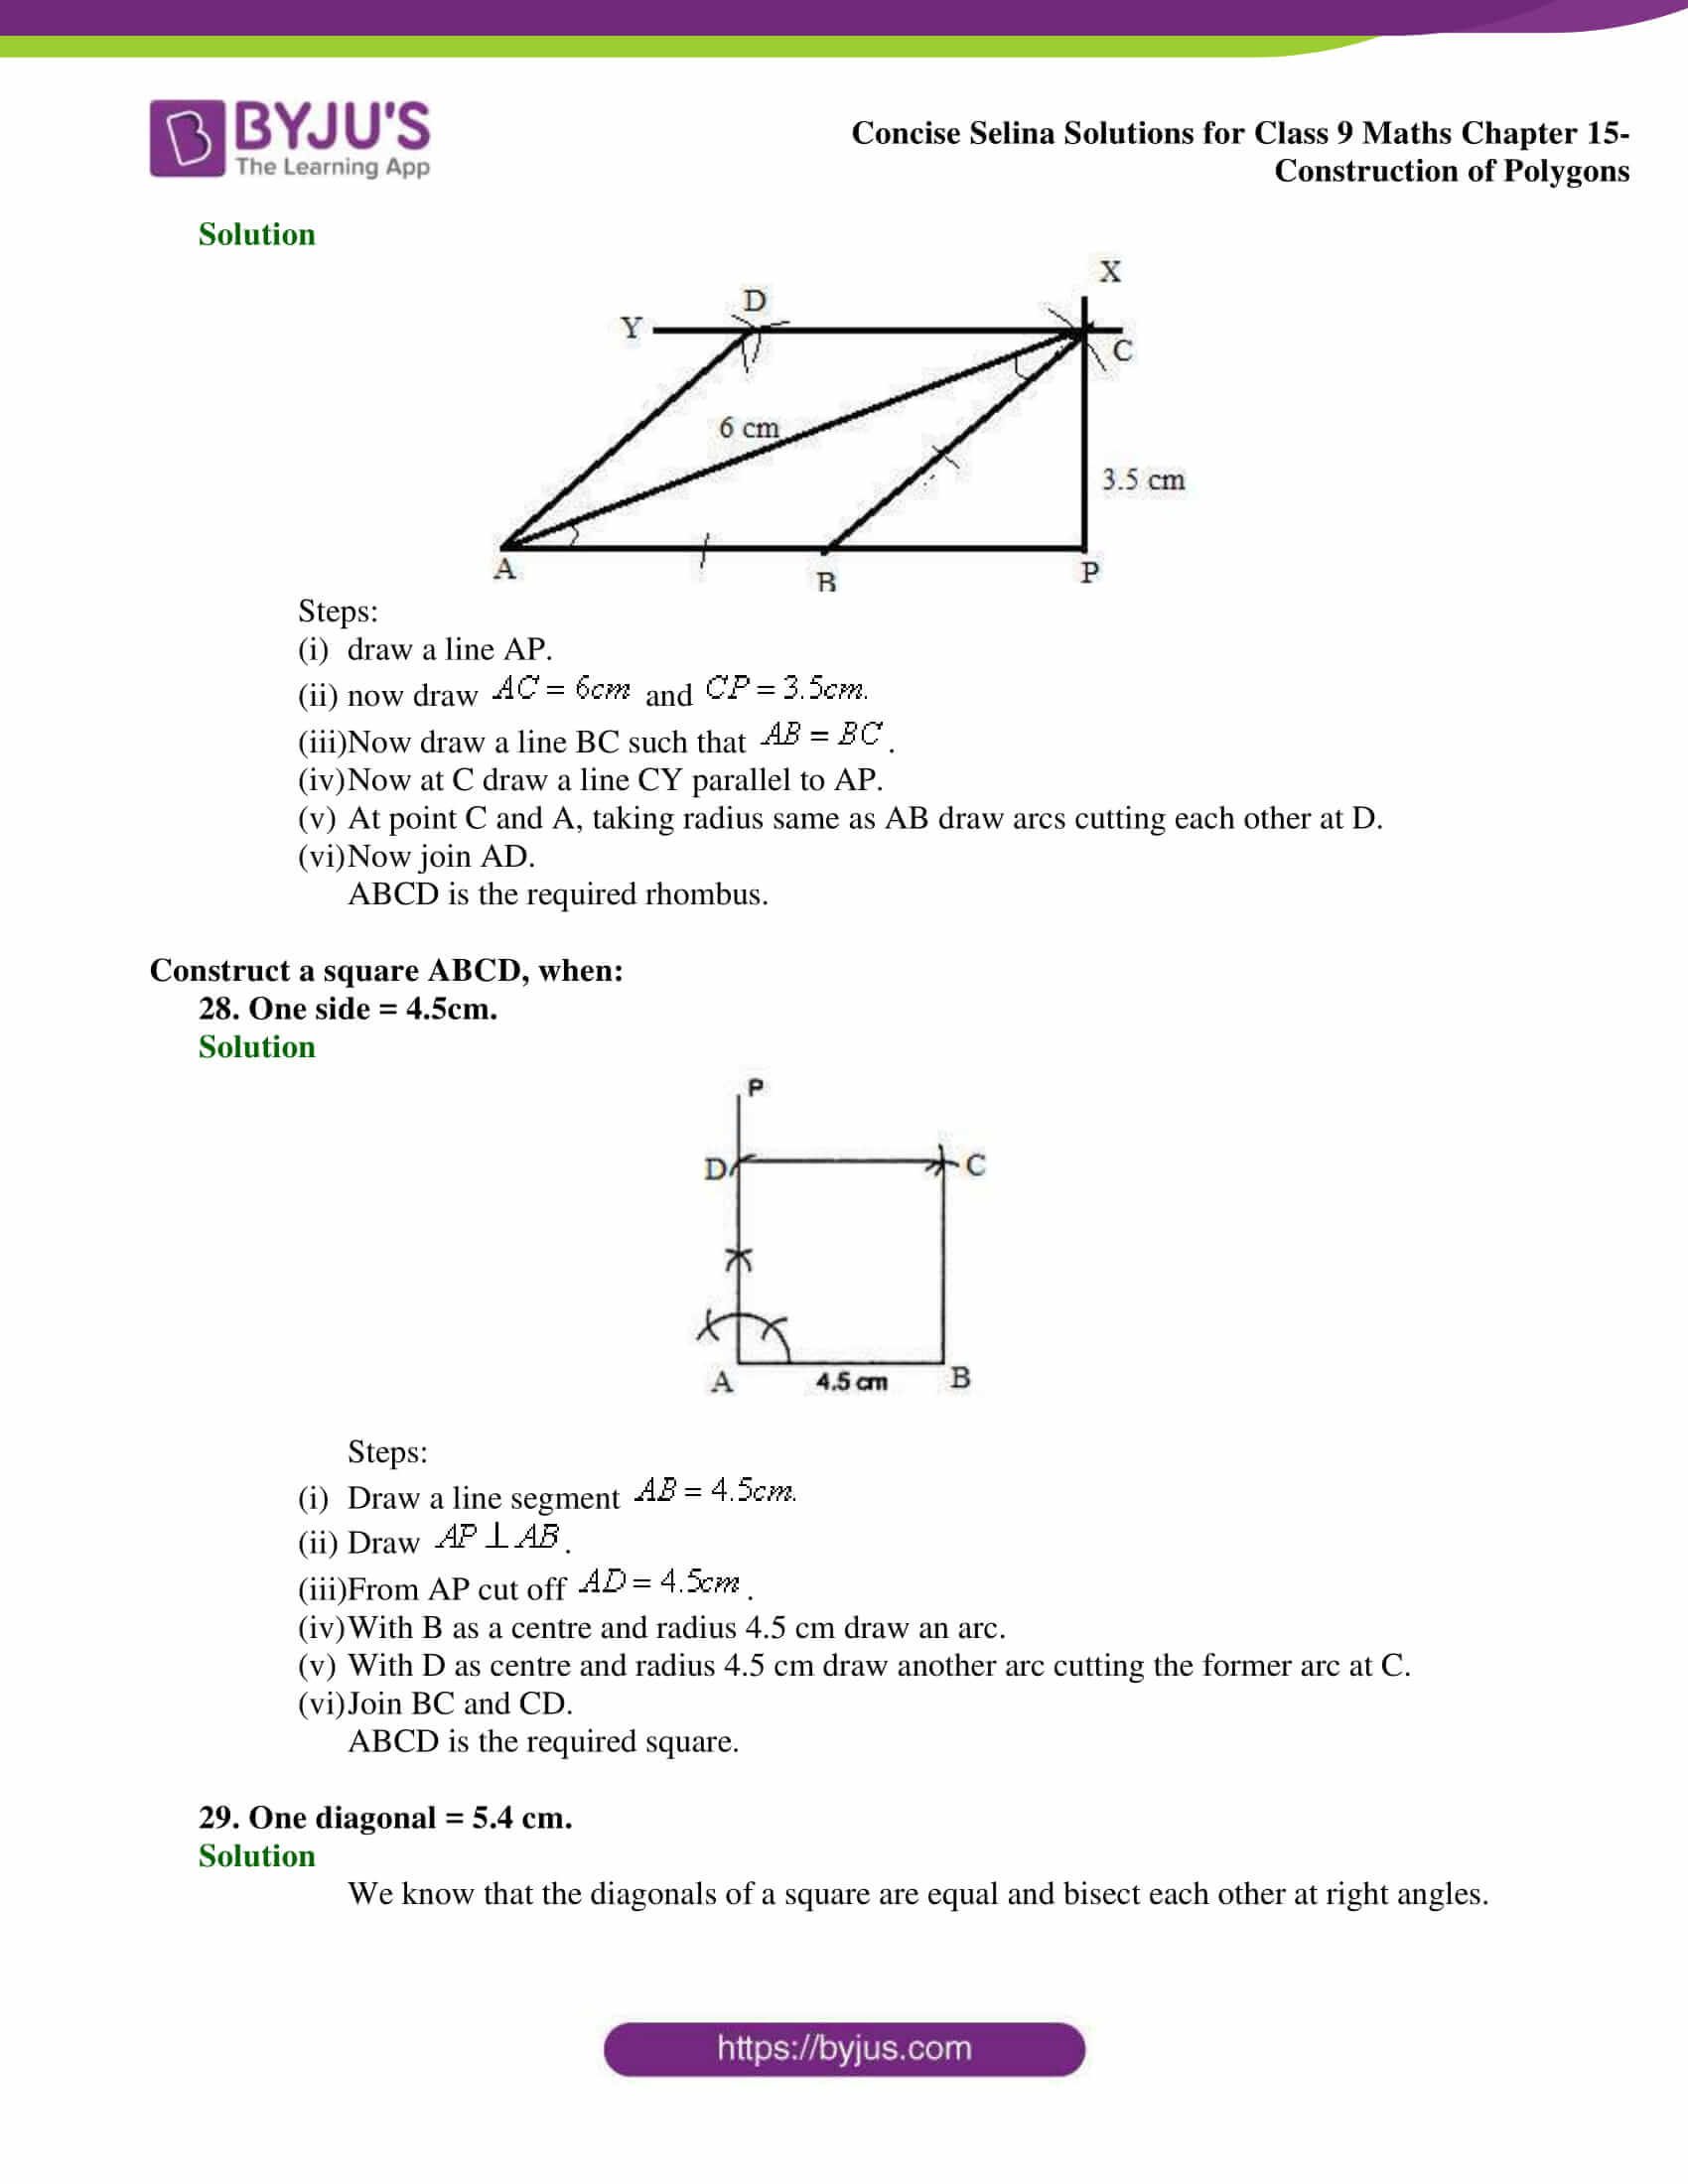 selina Solutions for Class 9 Maths Chapter 15 part 14